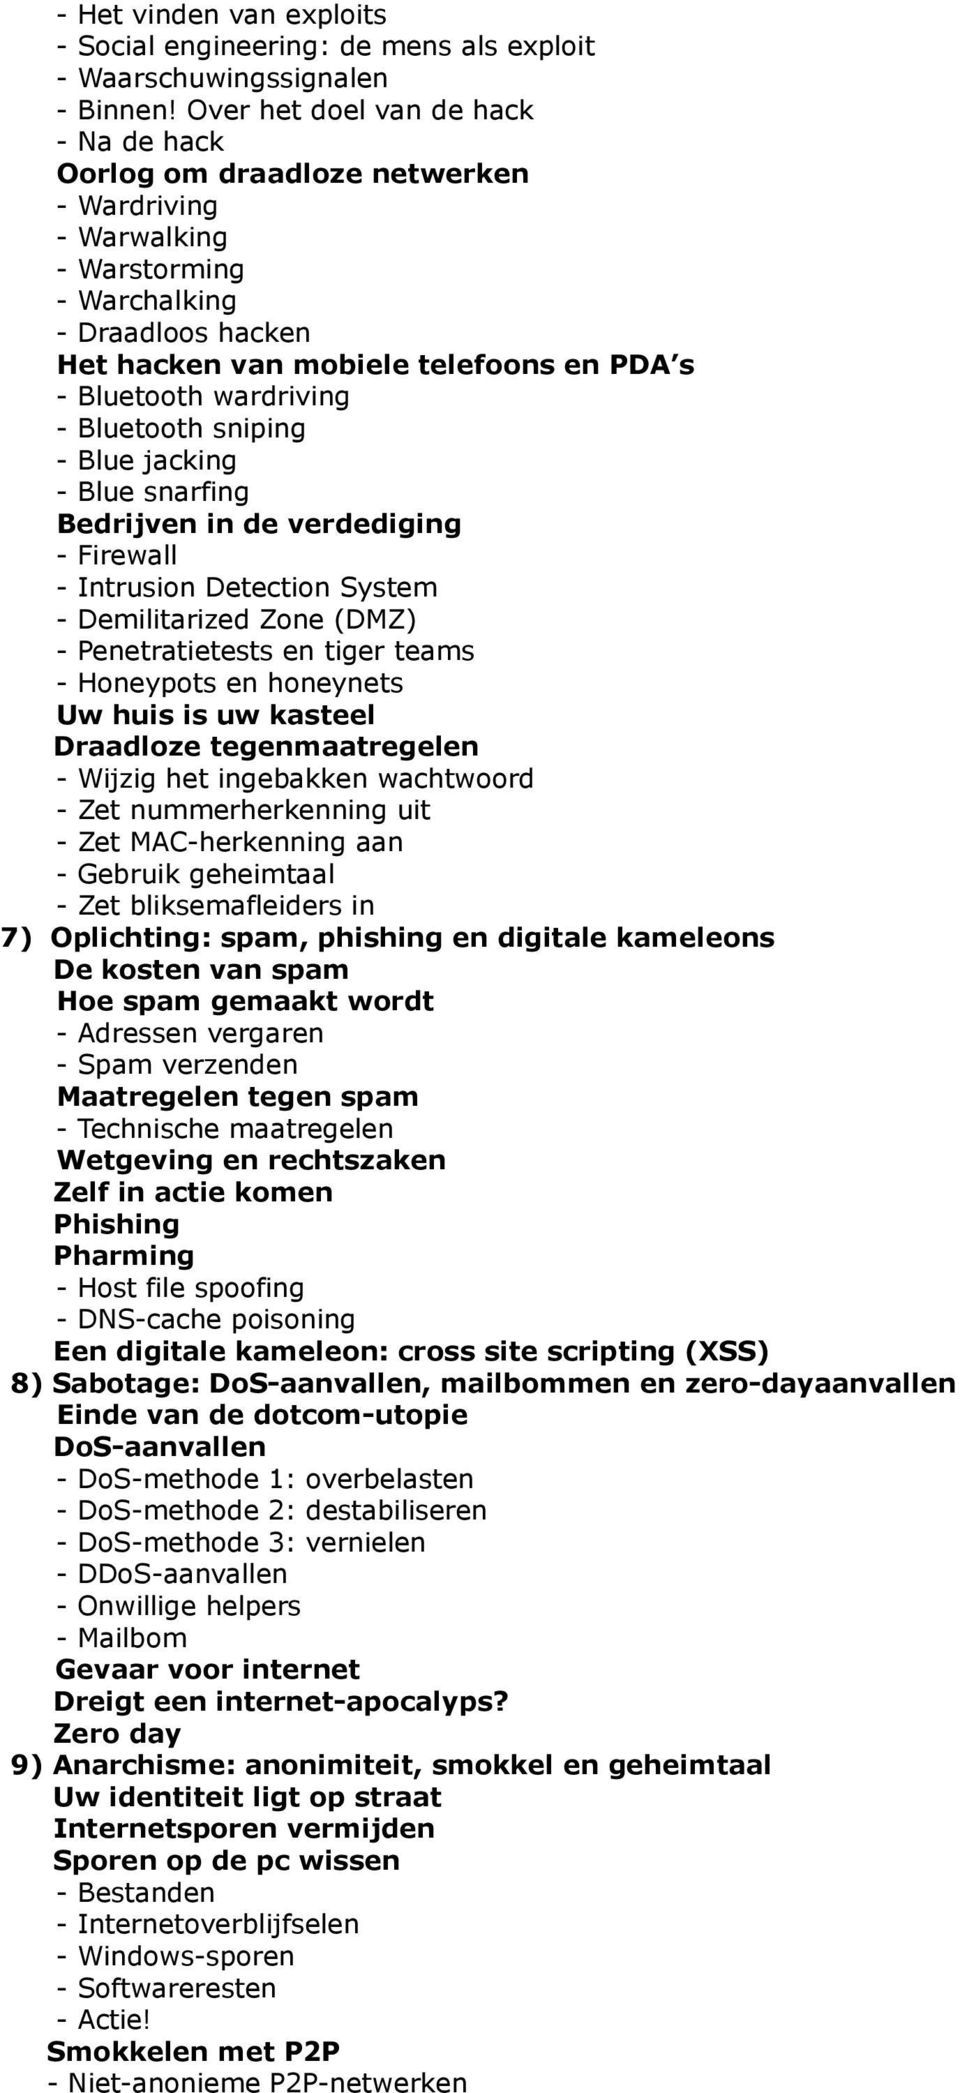 wardriving - Bluetooth sniping - Blue jacking - Blue snarfing Bedrijven in de verdediging - Firewall - Intrusion Detection System - Demilitarized Zone (DMZ) - Penetratietests en tiger teams -